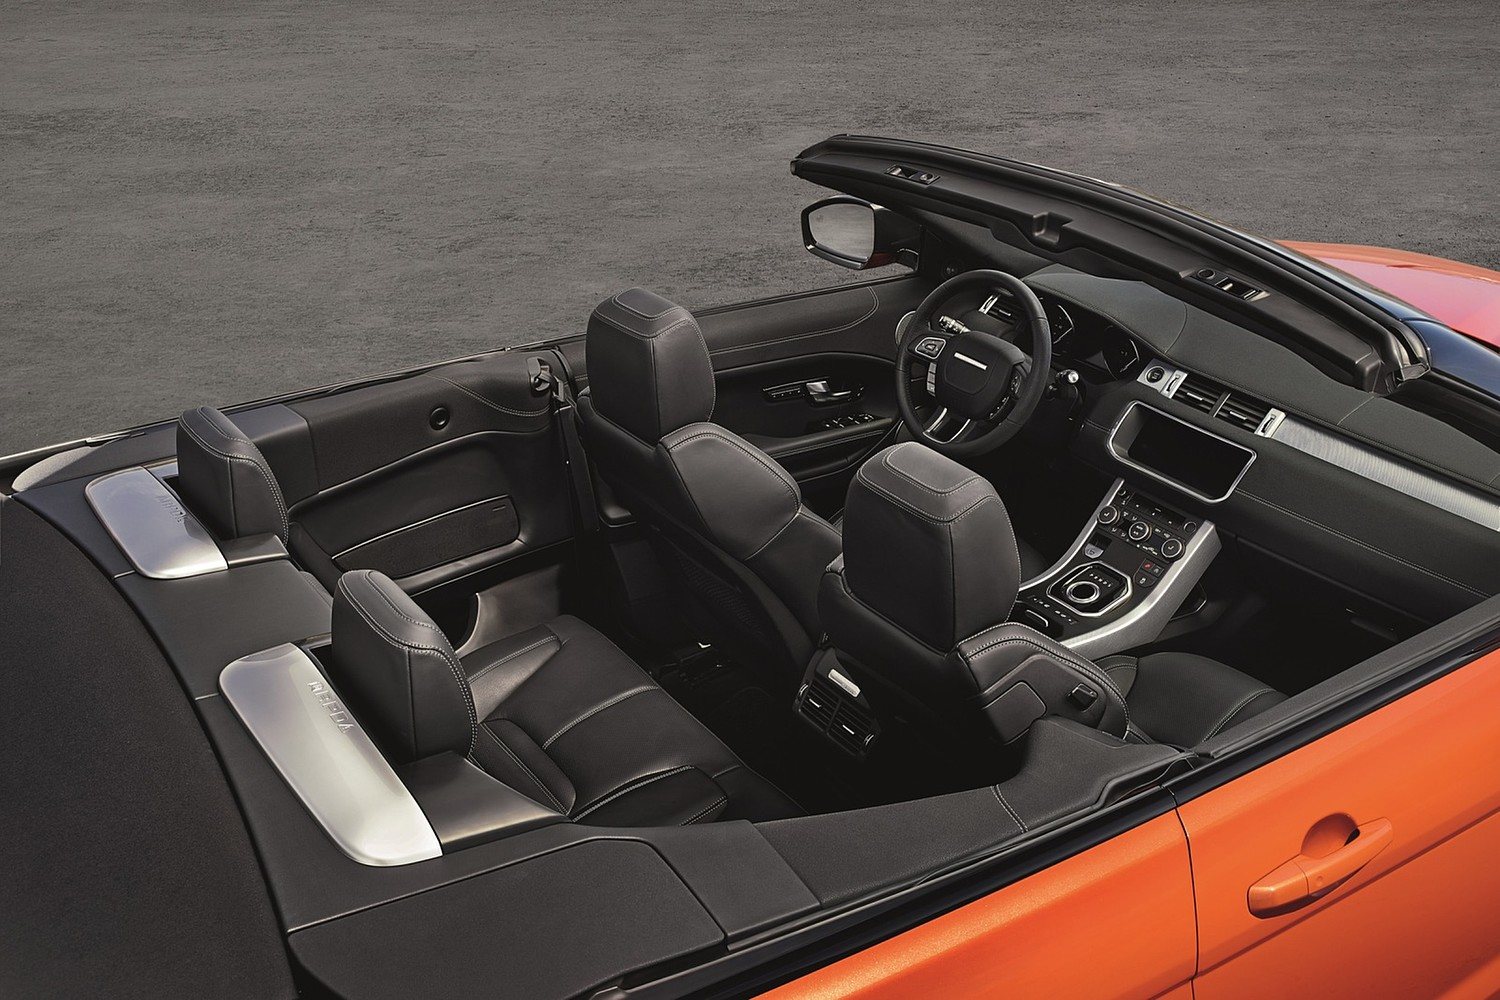 Land Rover Range Rover Evoque HSE Dynamic Convertible SUV Interior (2017 model year shown)